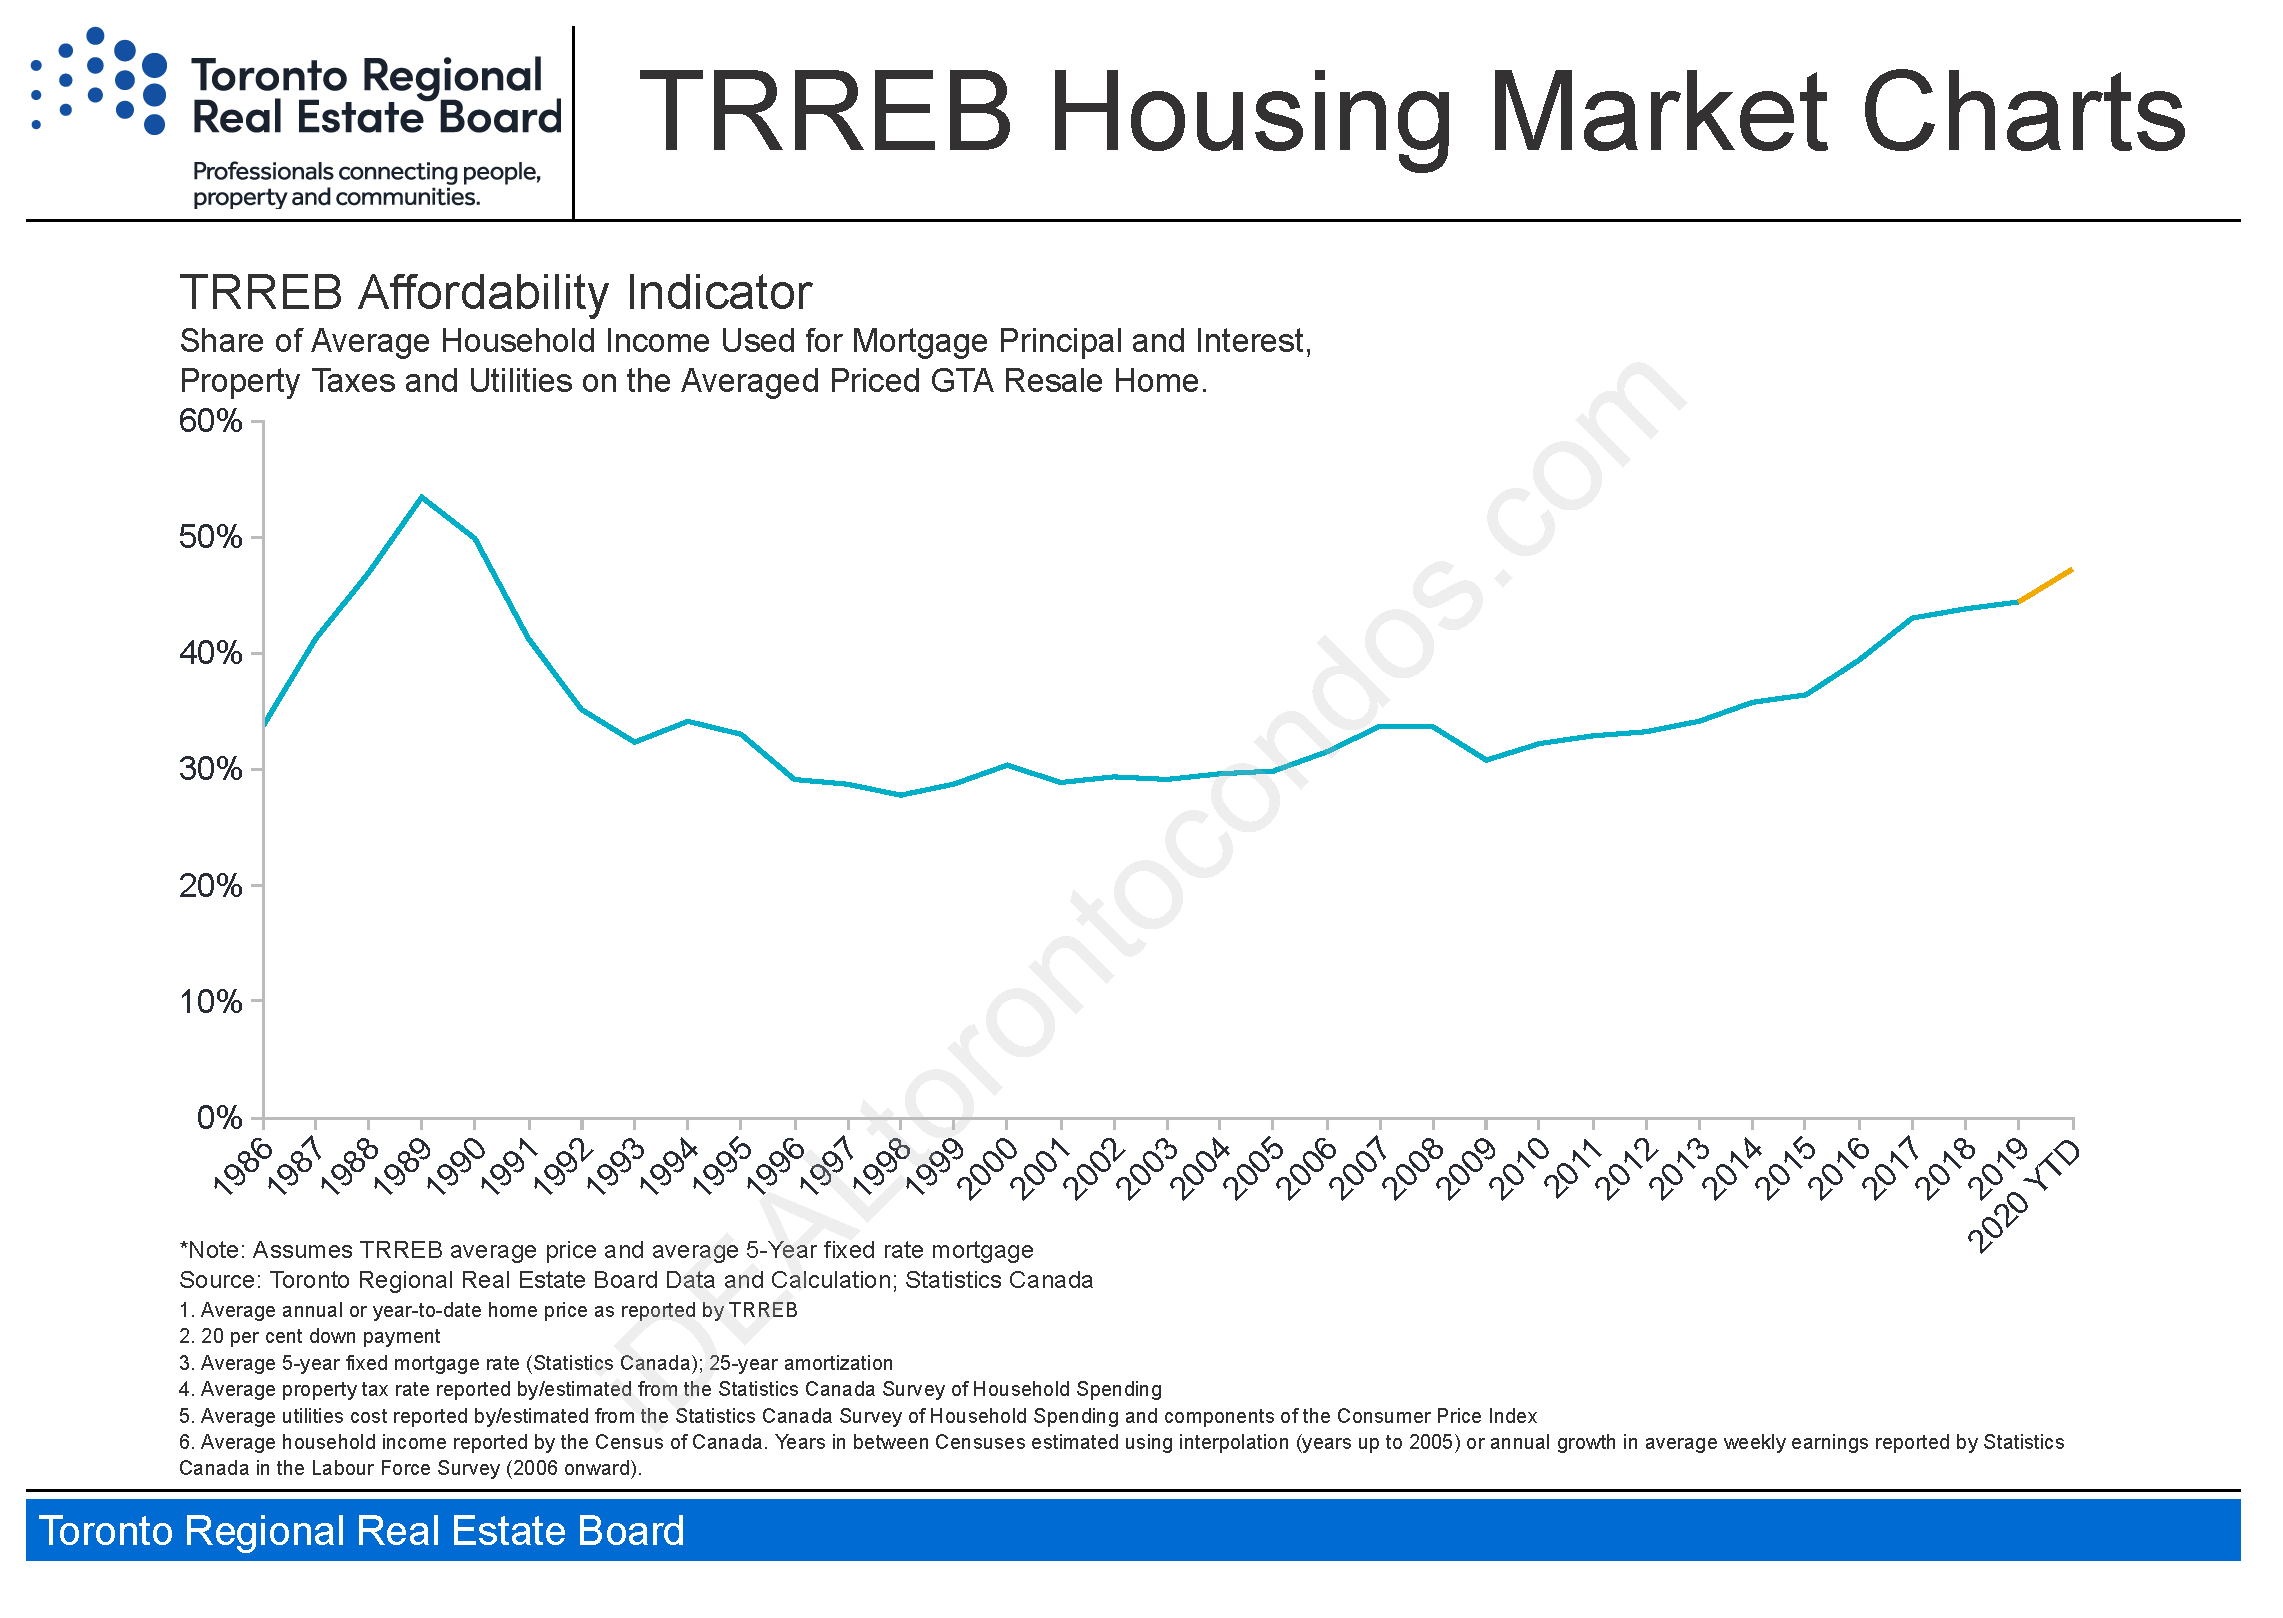 Toronto TREB Housing Market Charts July 2020